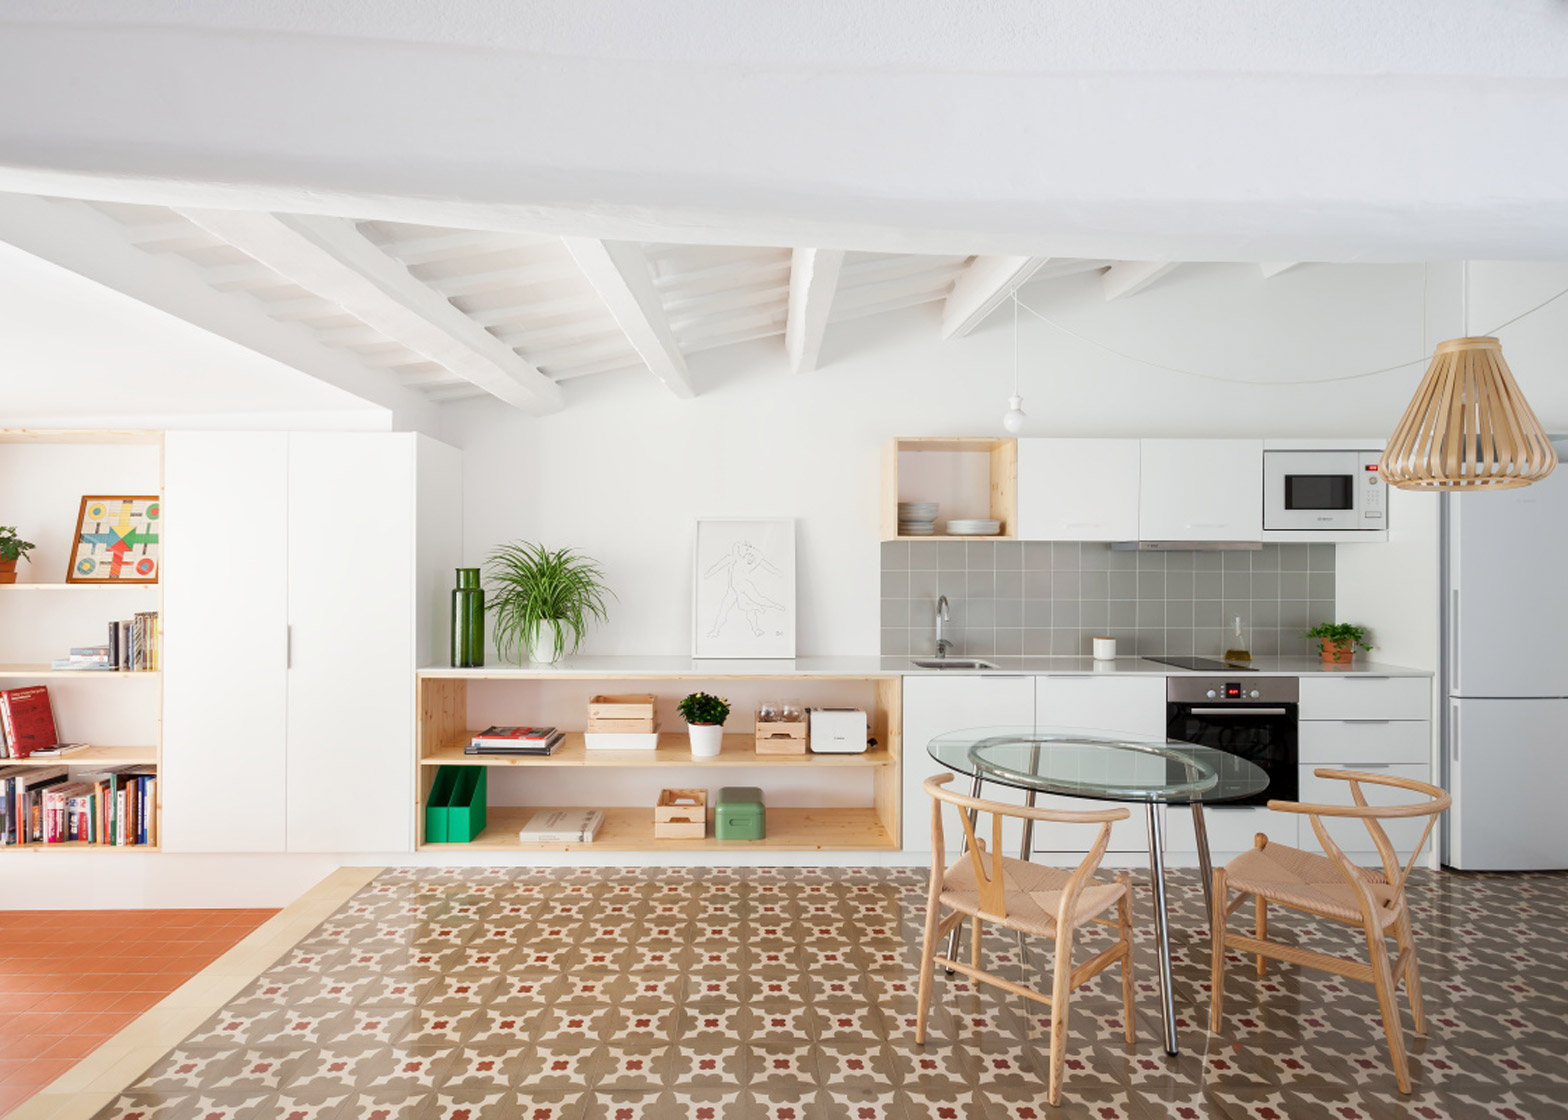 Apartment in Sant Andreu by Oriol Garcia